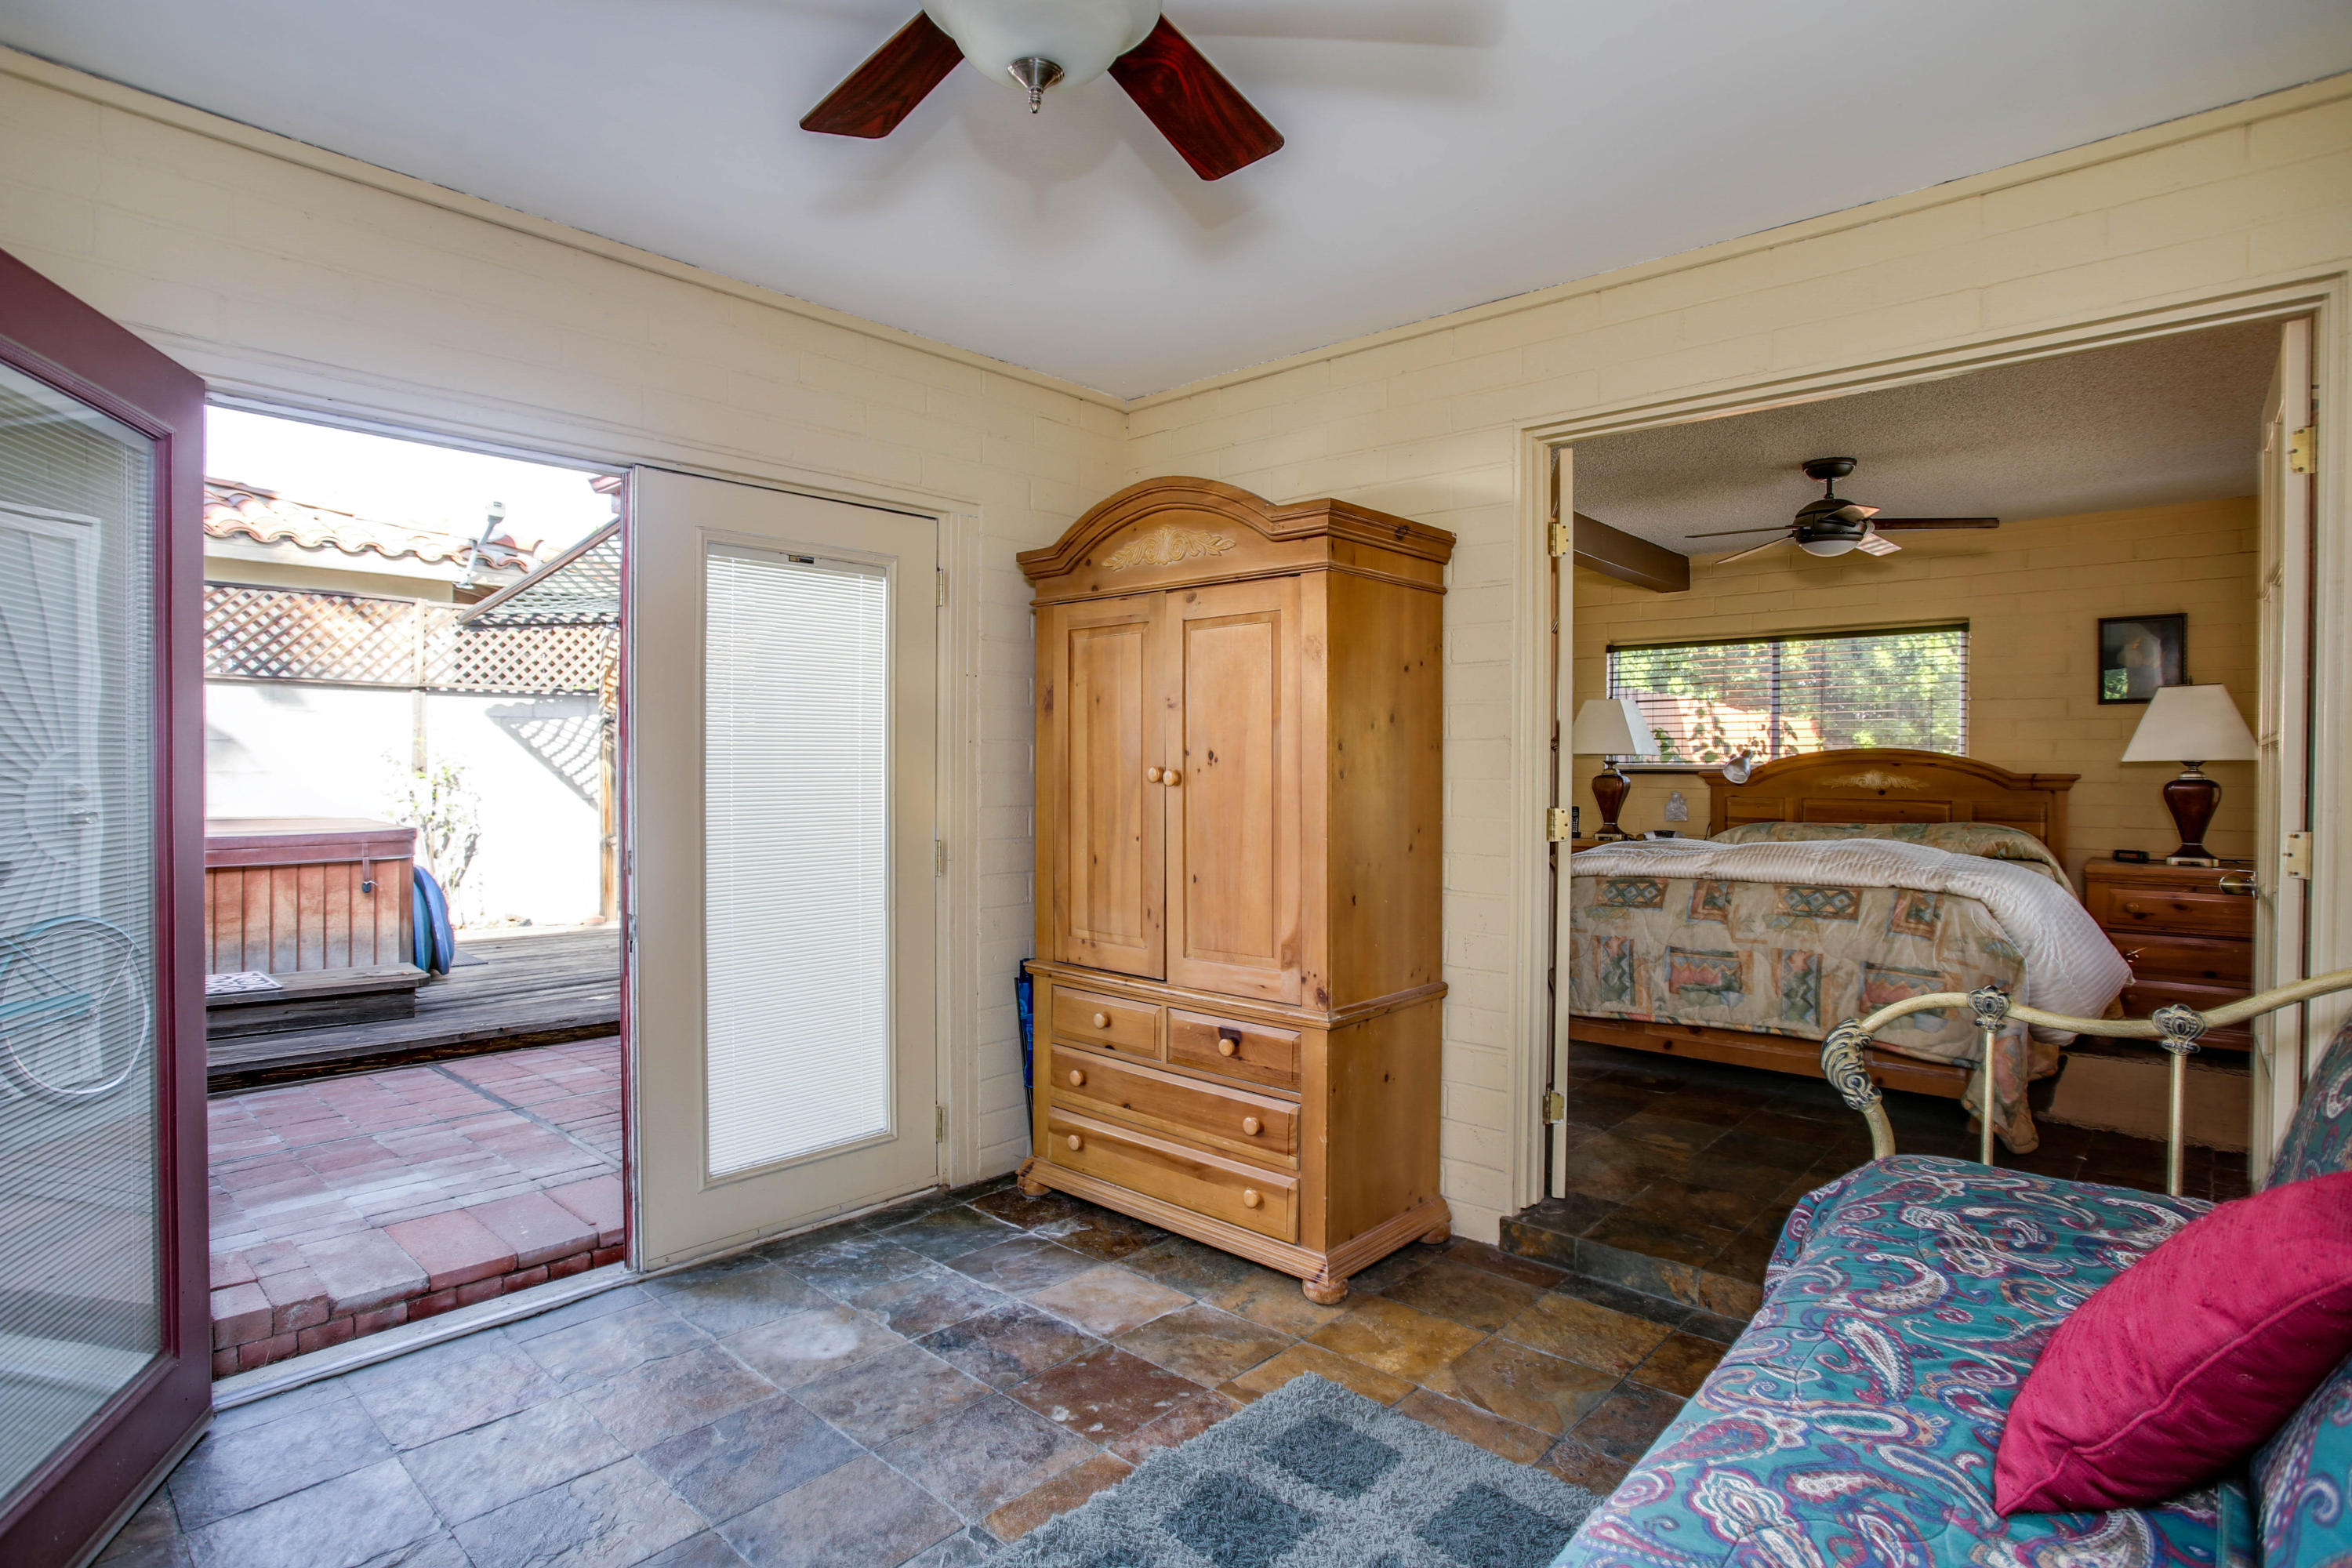 740 E Sunny Dunes Road, Palm Springs, California 92264, 2 Bedrooms Bedrooms, ,2 BathroomsBathrooms,Residential,For Sale,740 E Sunny Dunes Road,219035382